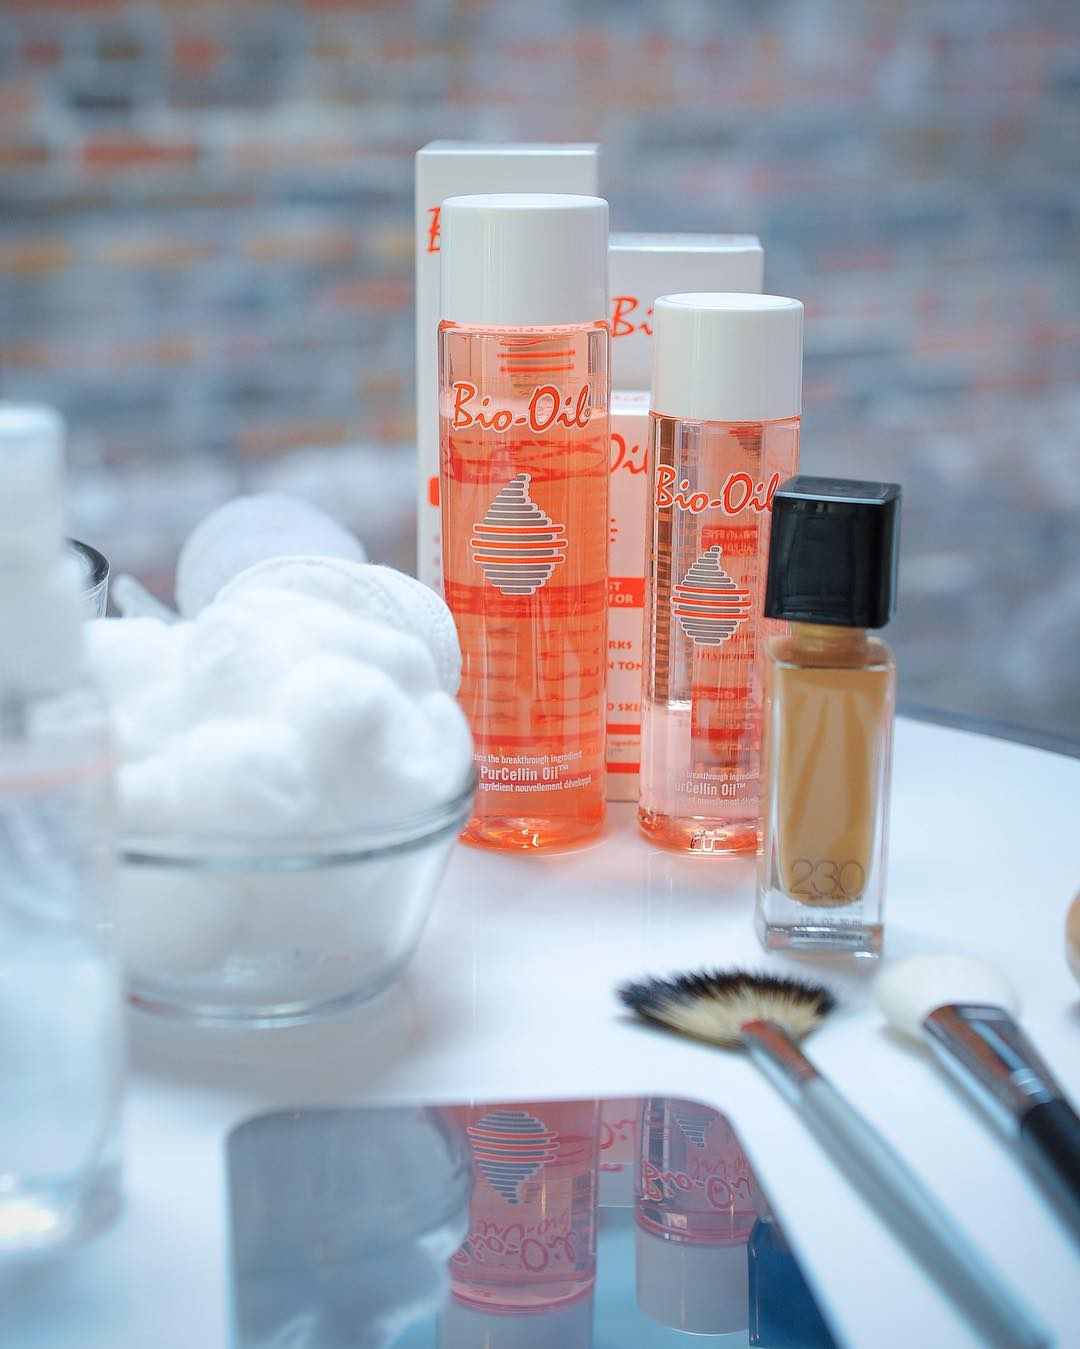 Bio-oil as makeup primer